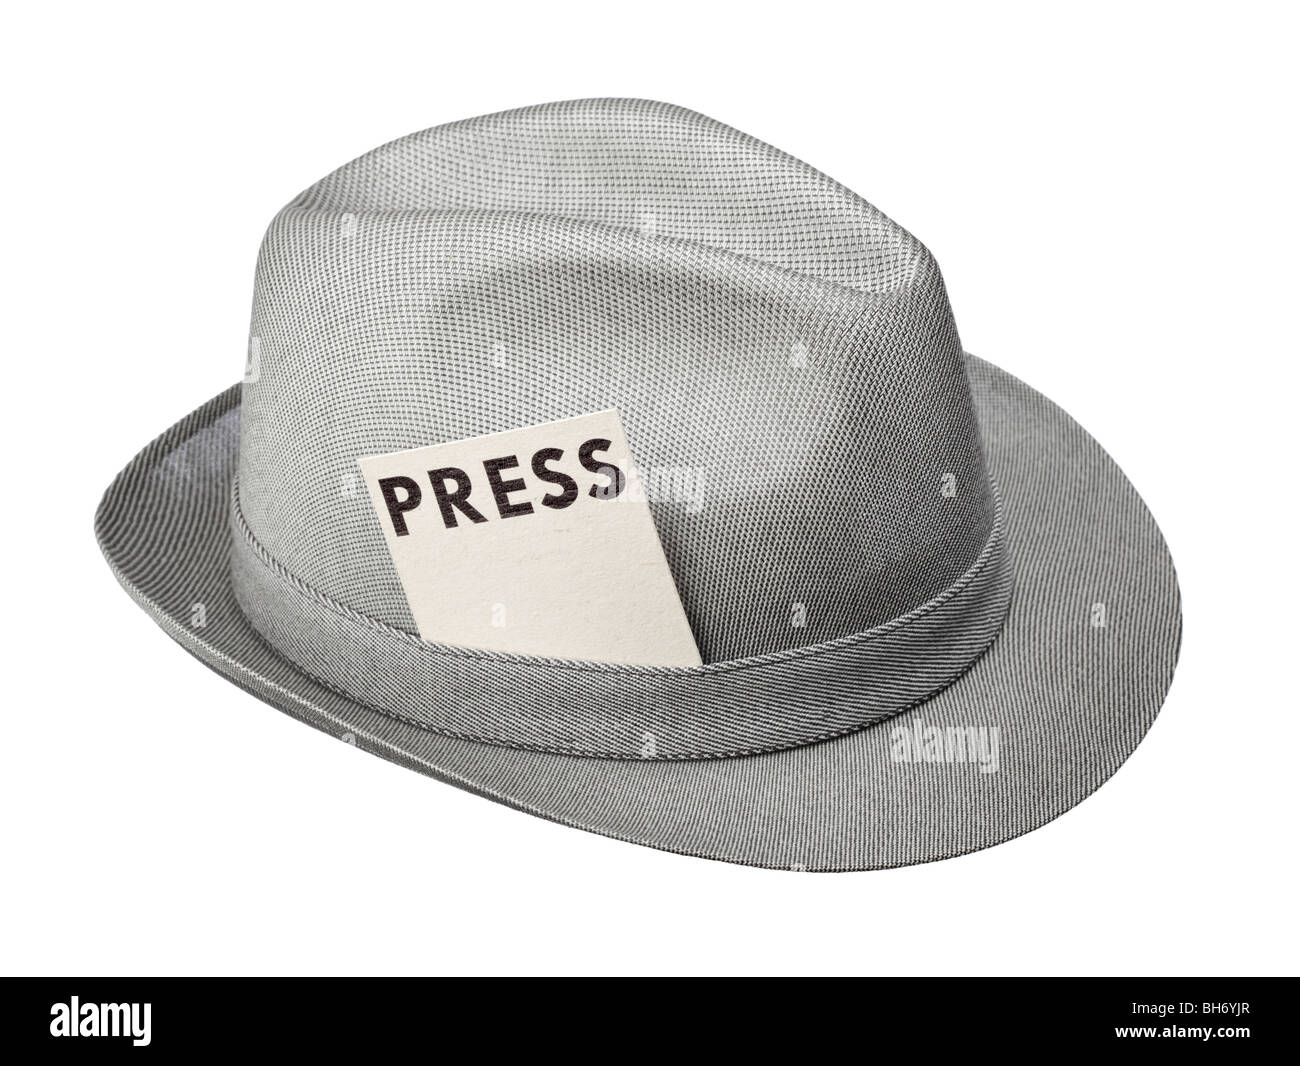 aa401513bba30 Press Card Hat Stock Photos & Press Card Hat Stock Images - Alamy